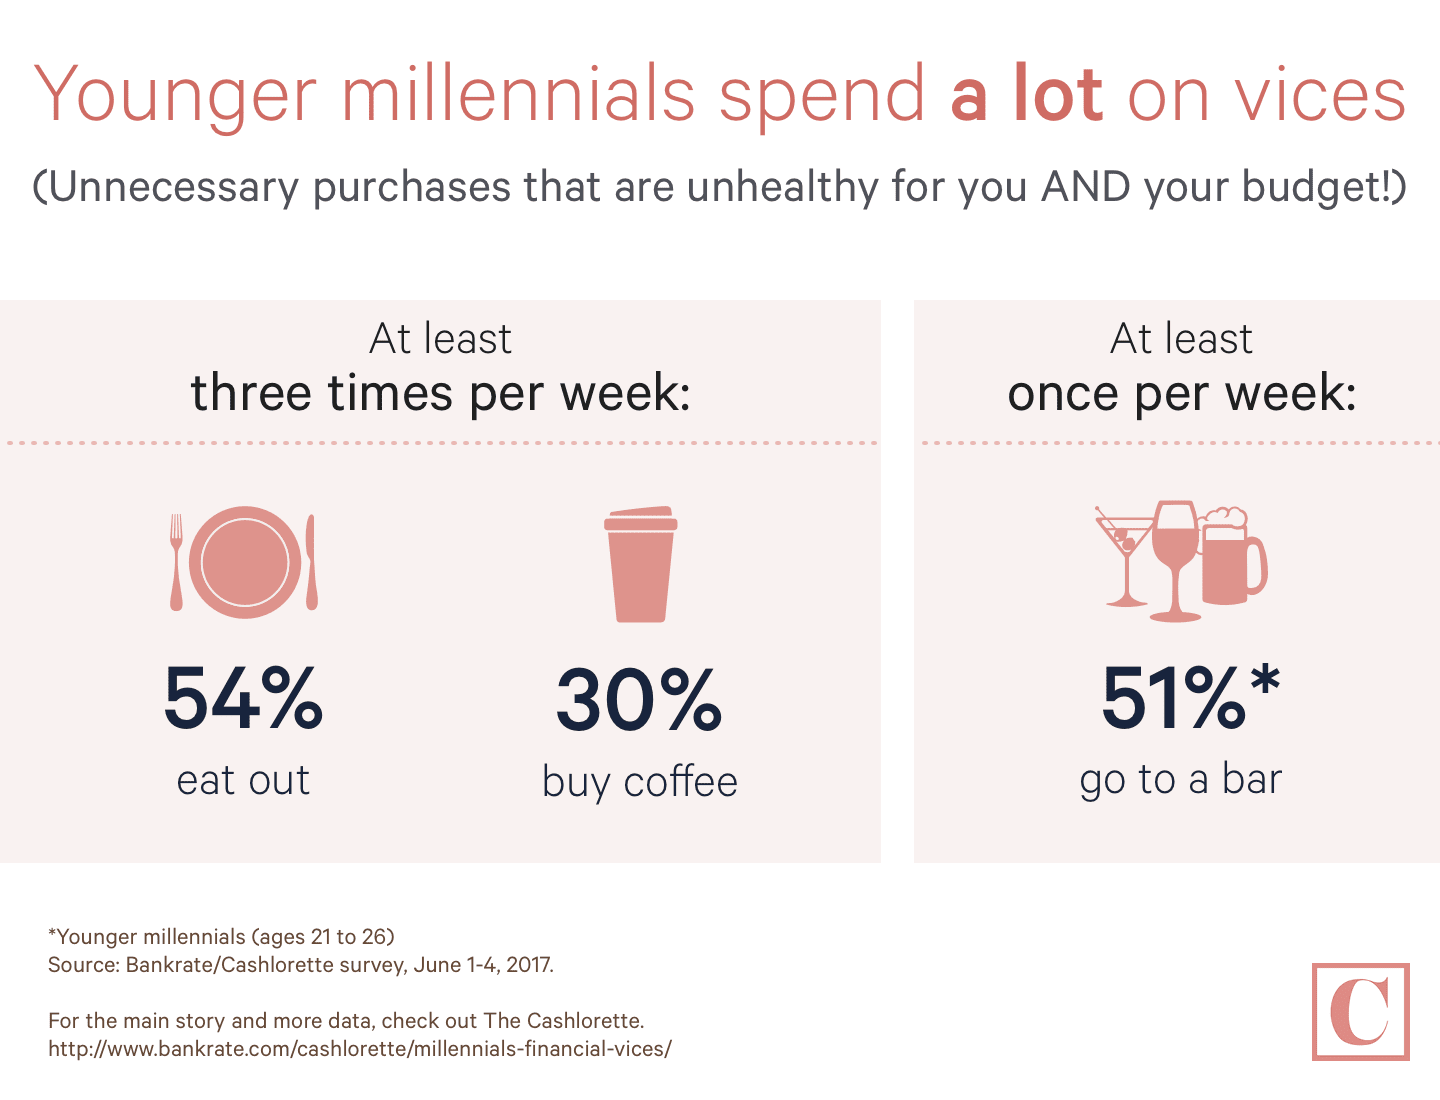 Younger millennials spend a lot on vices